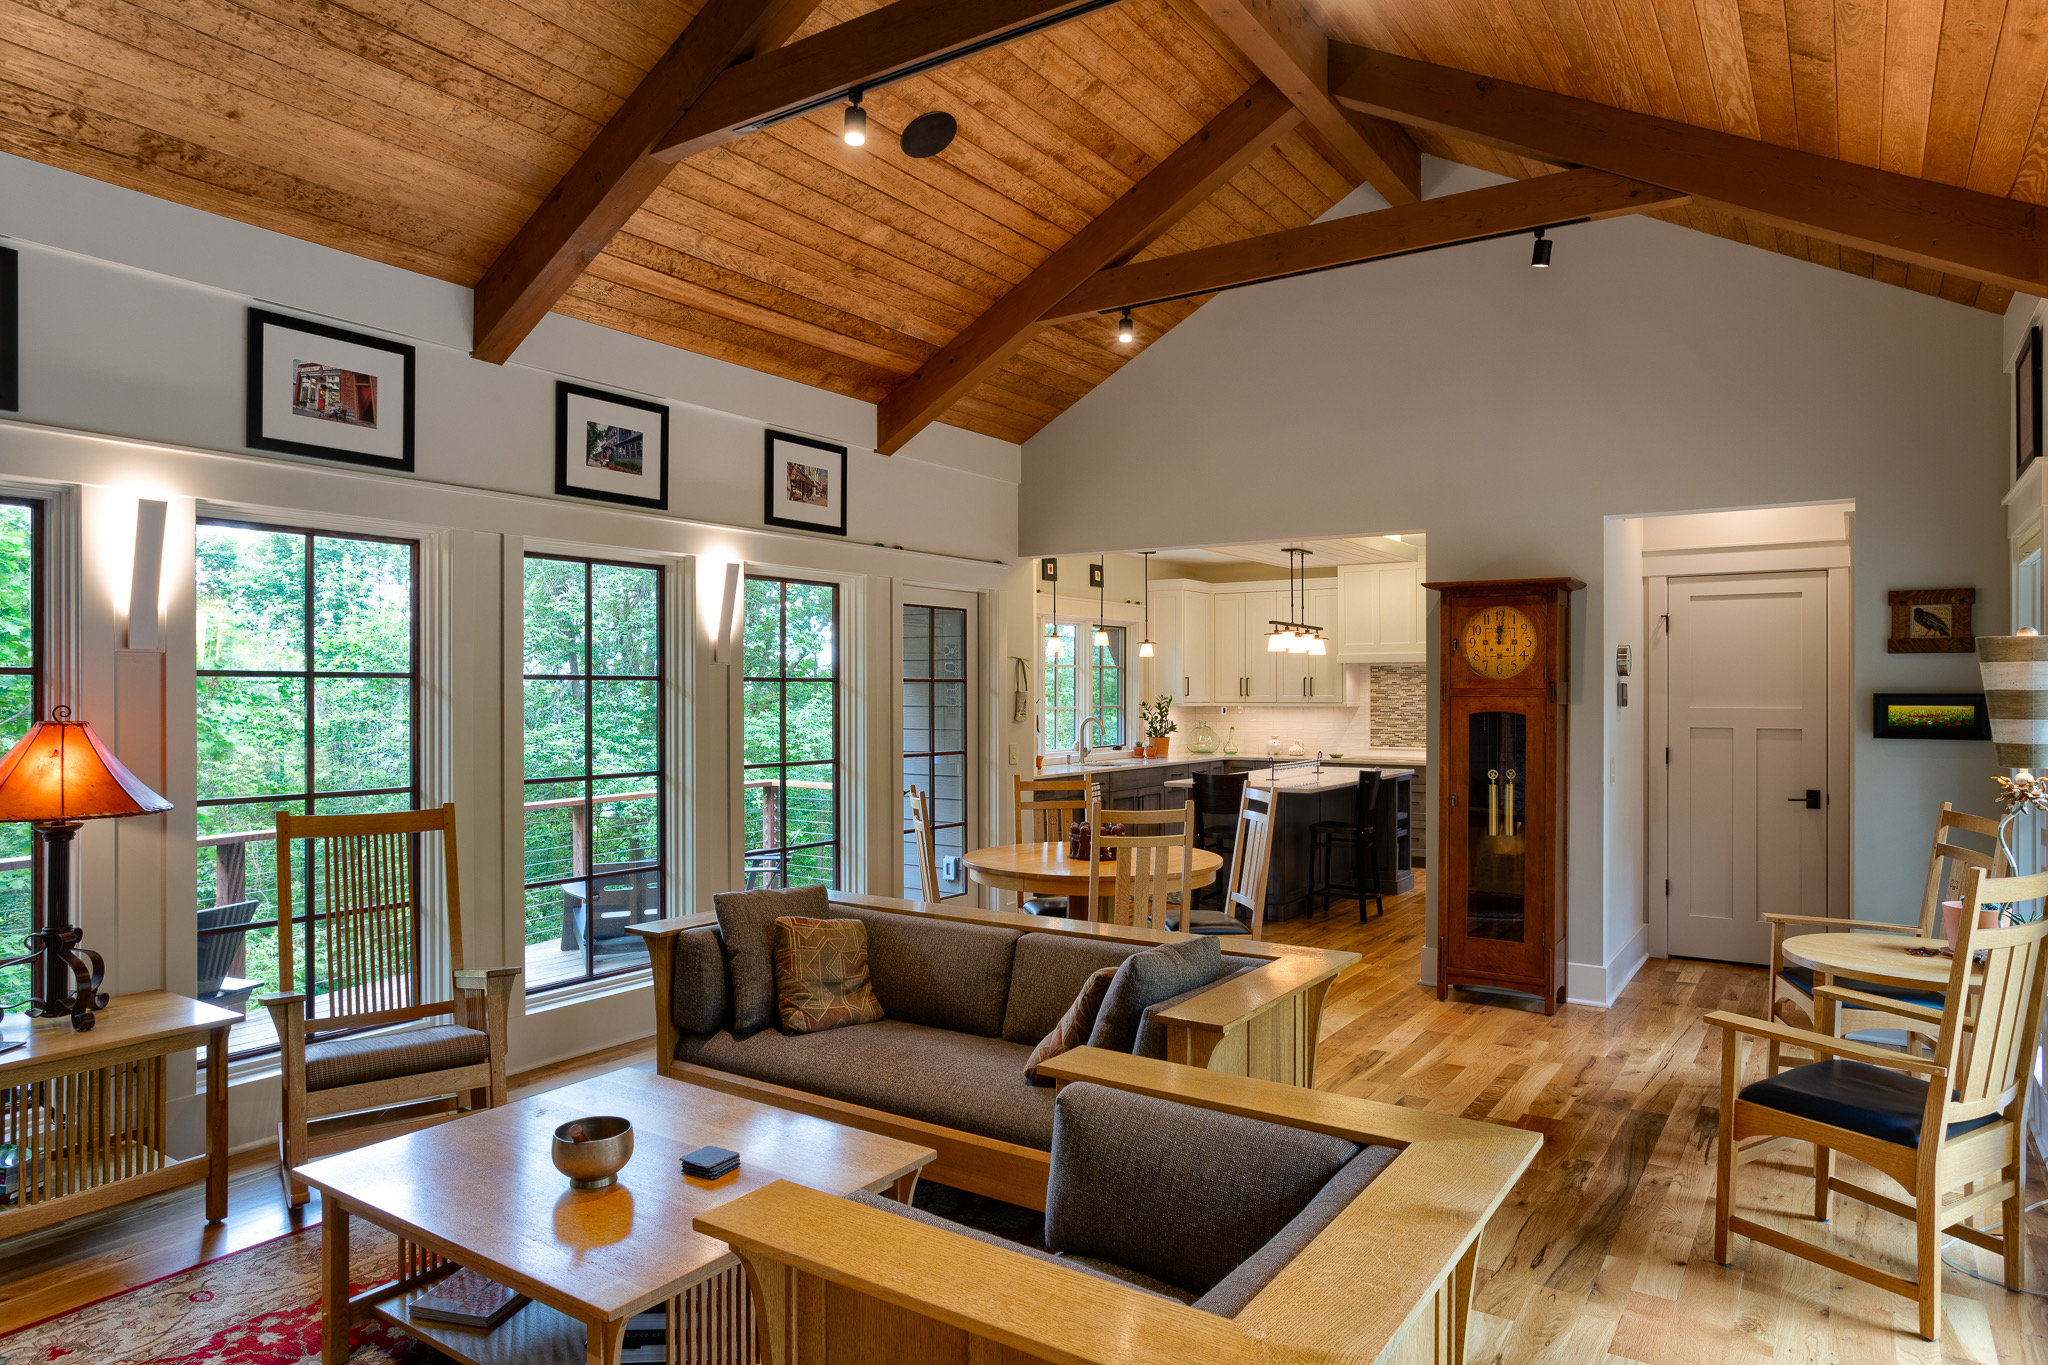 Living room to kitchen view in new mountain craftsman with vaulted, wood clad ceiling